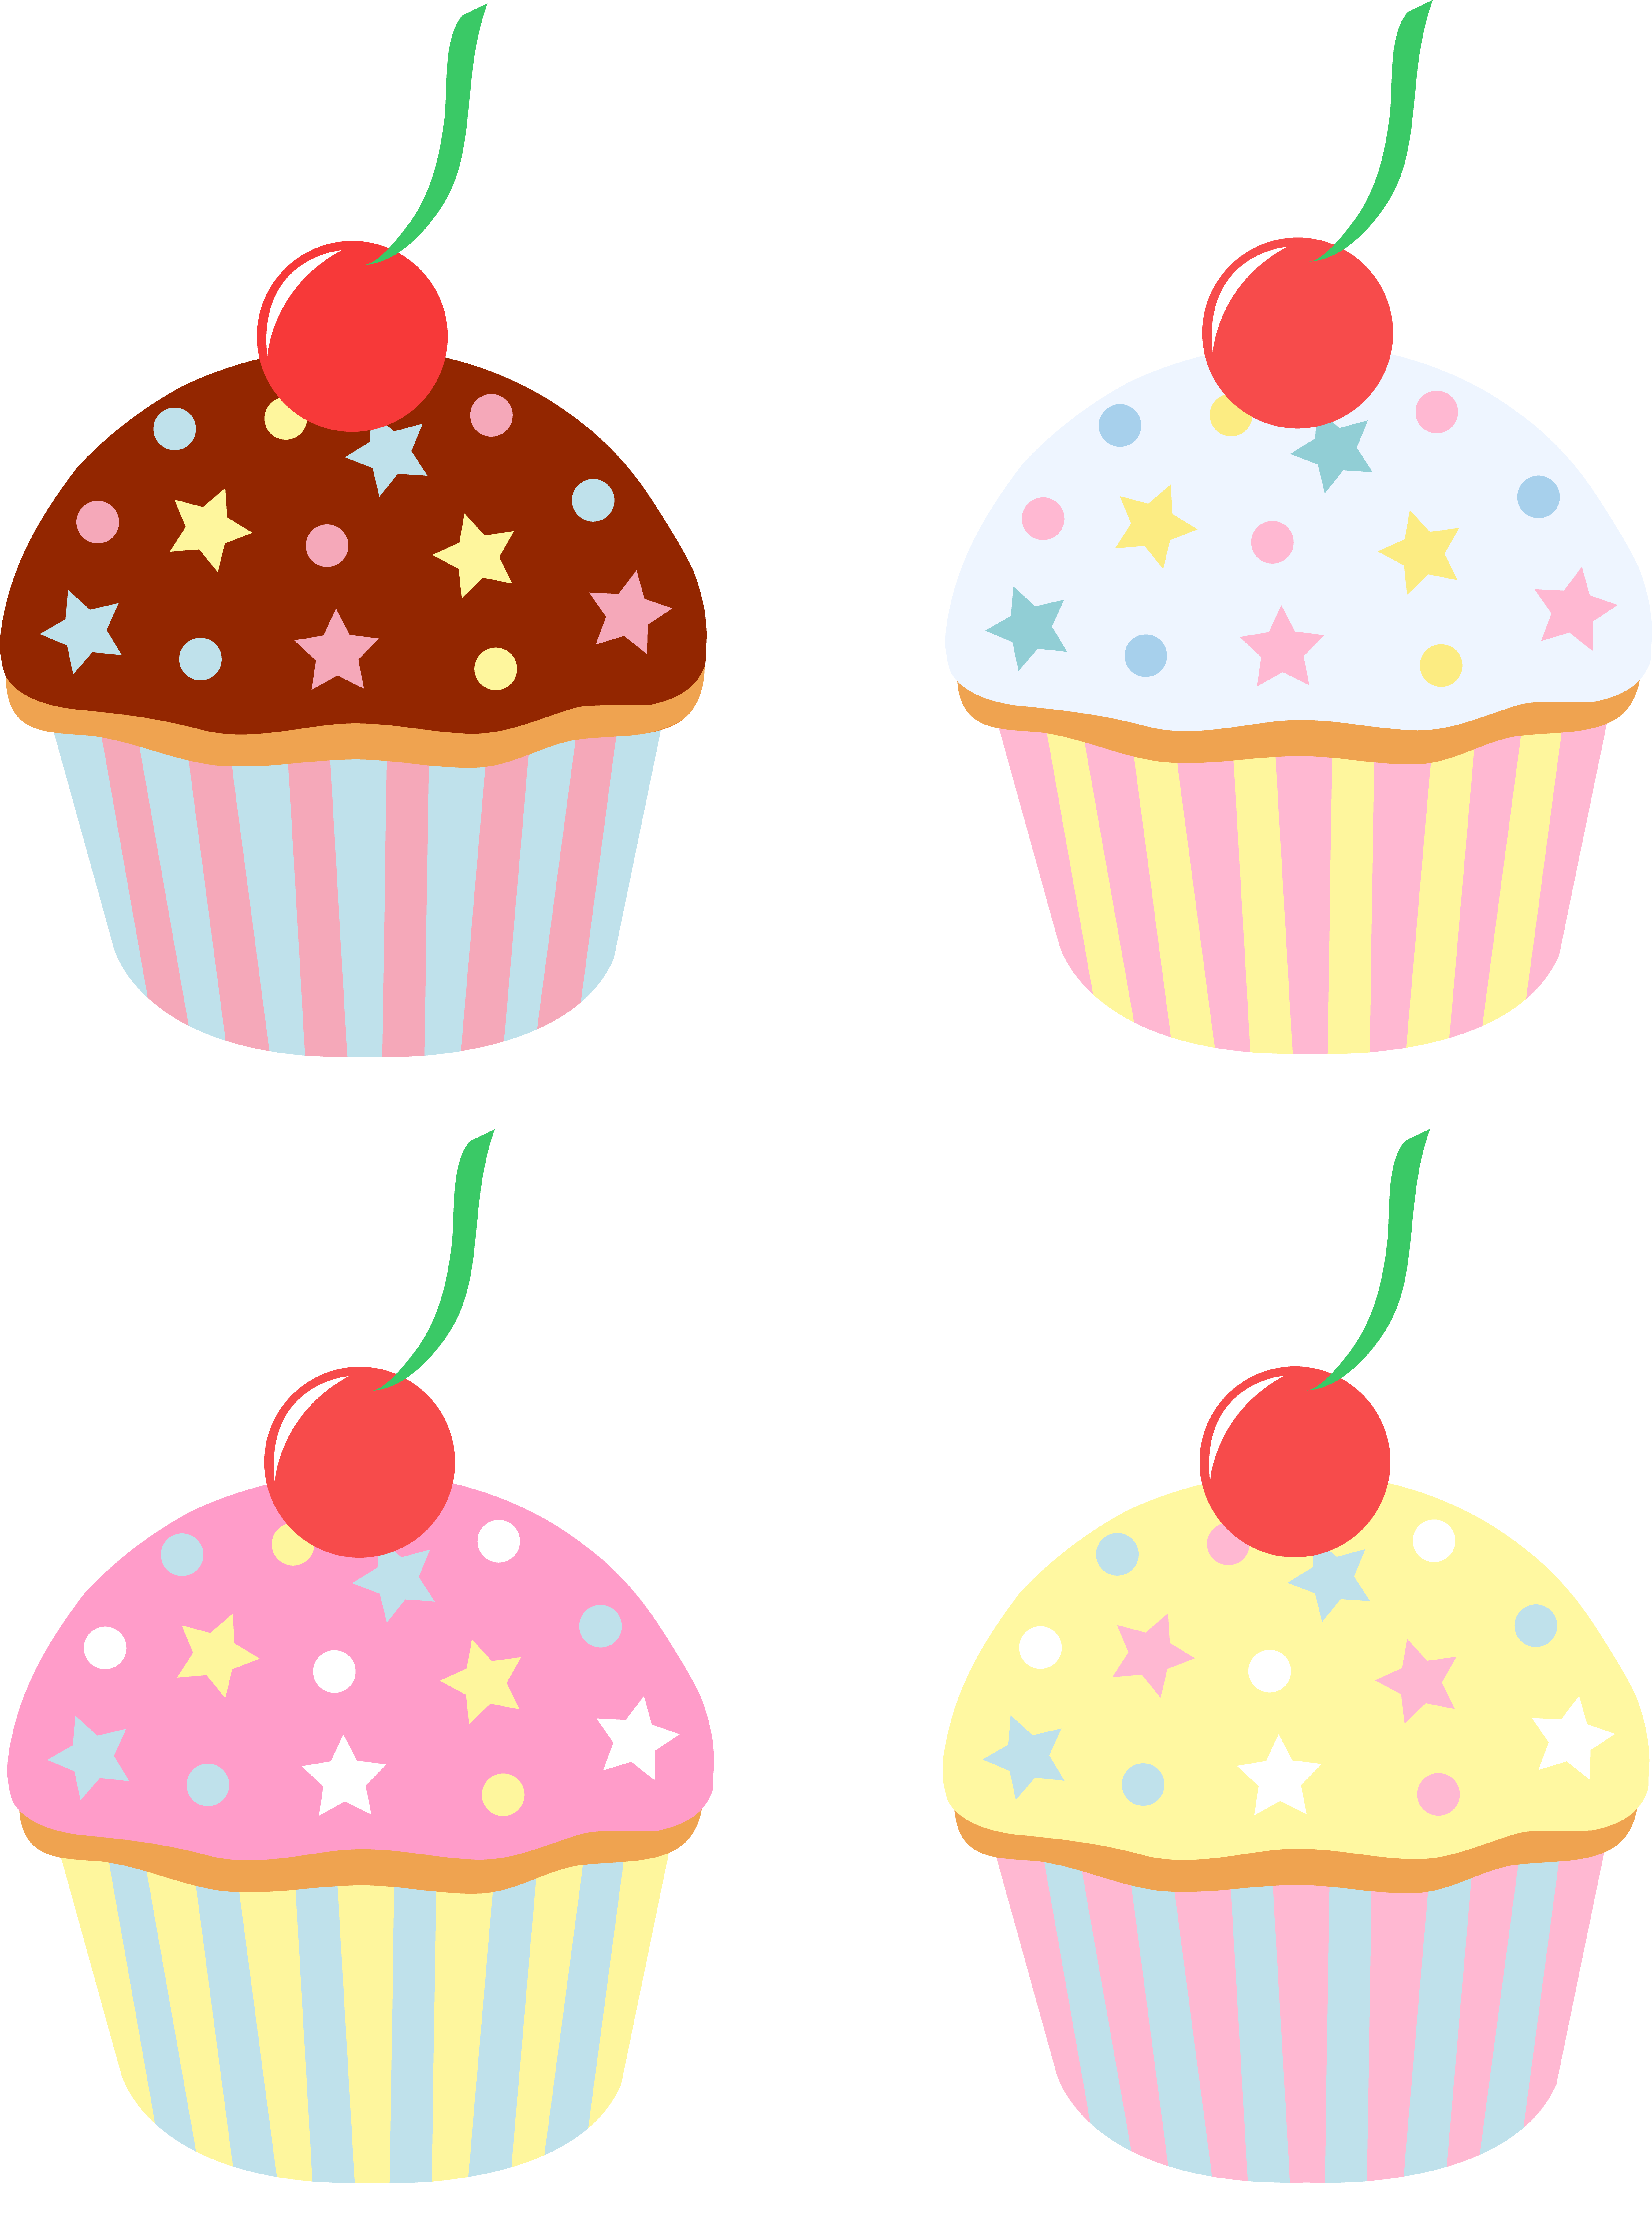 Images For > Cute Cupcake Cartoon - Cliparts.co